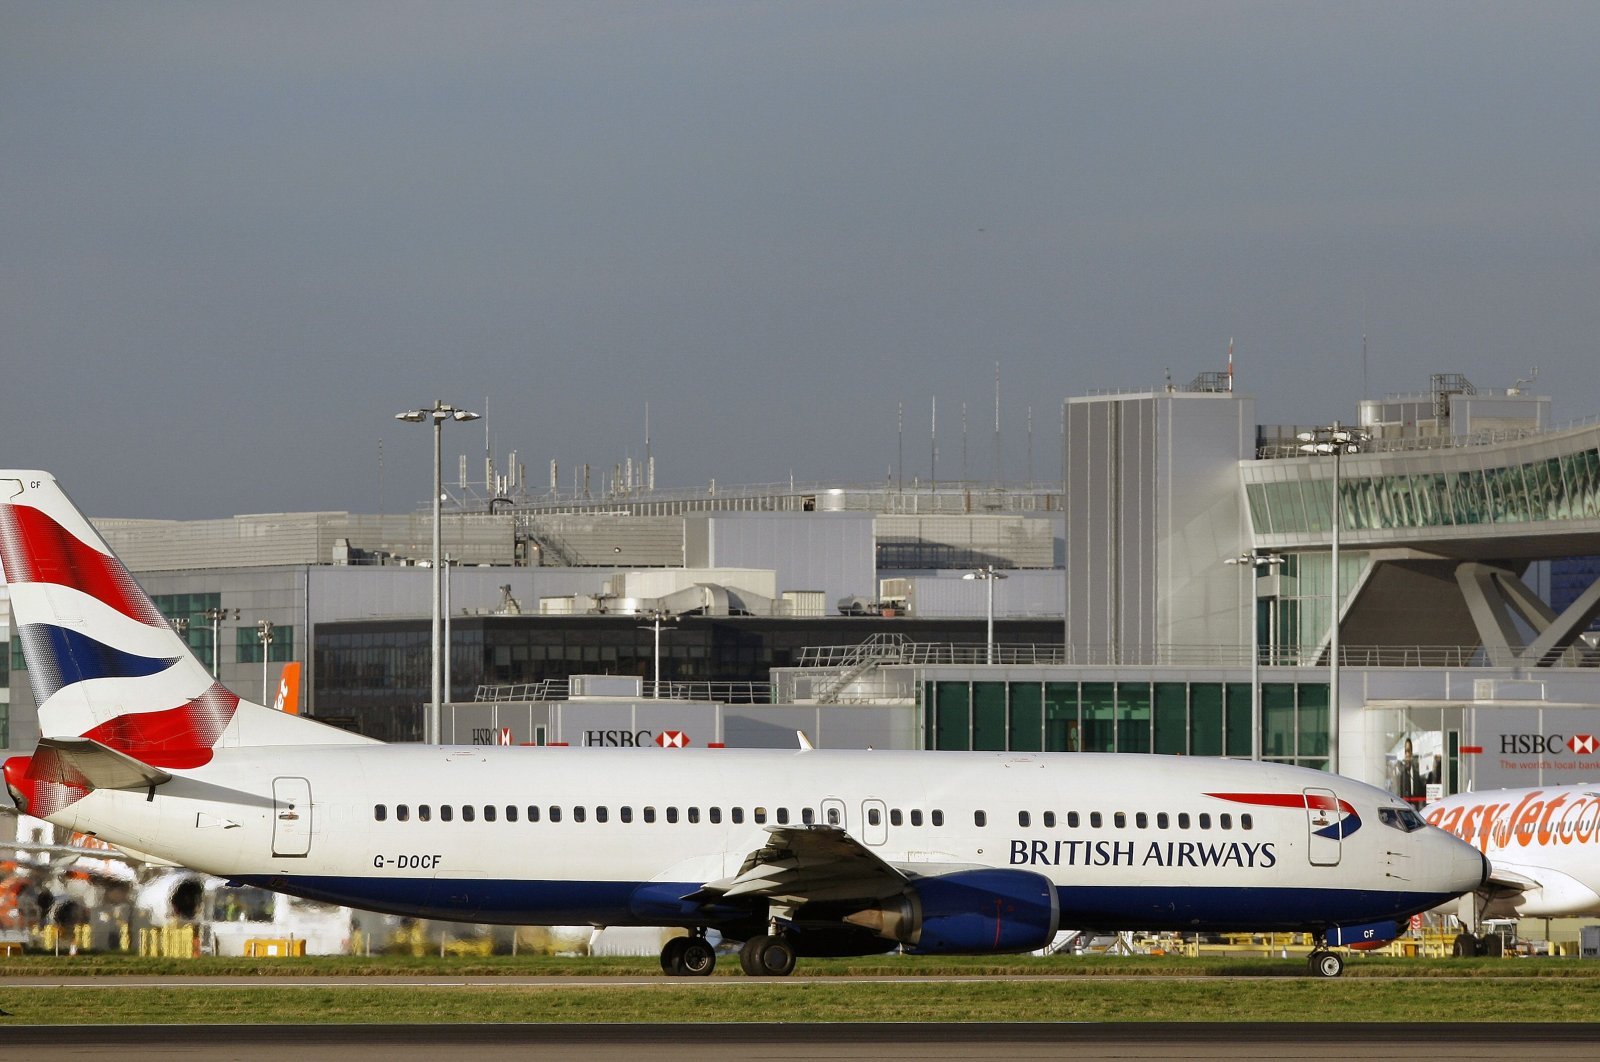 This file picture taken on November 19, 2008 shows a British Airways passenger jet along the apron at London Gatwick Airport near Crawley, southern England. (AFP Photo)